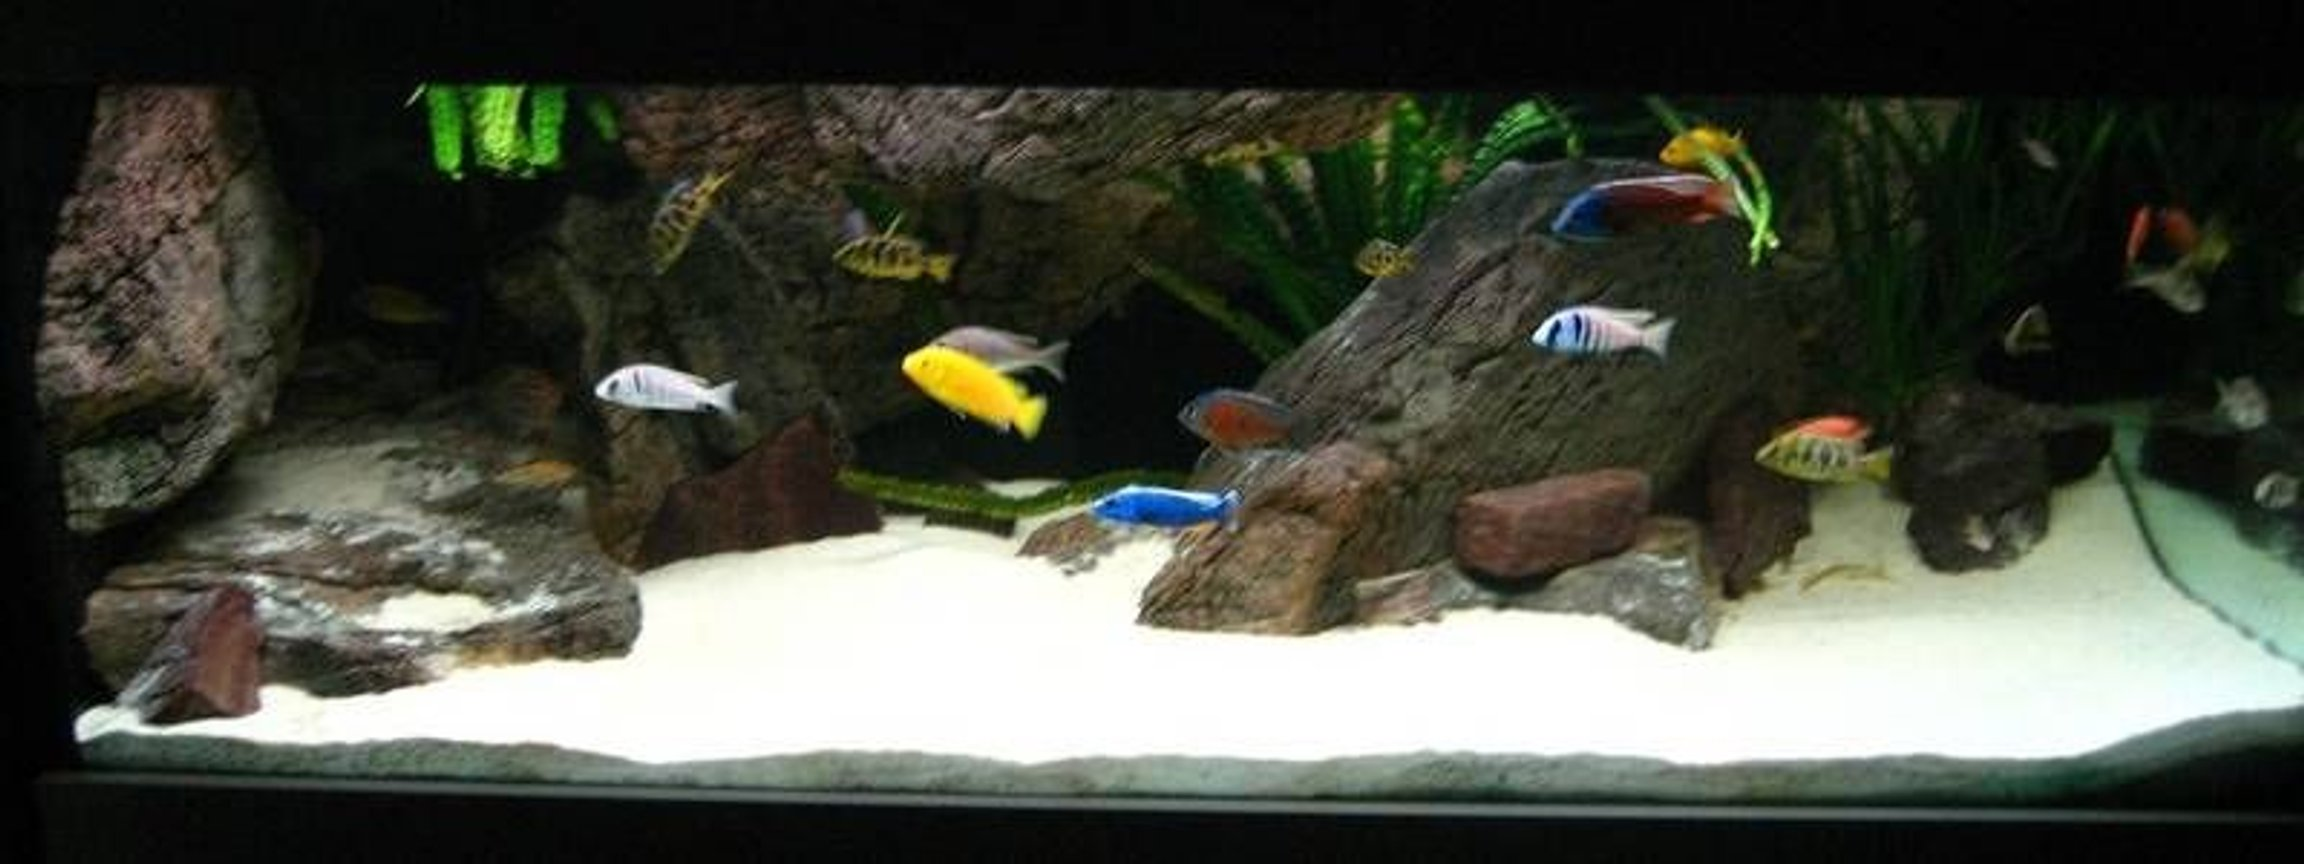 280 gallons freshwater fish tank (mostly fish and non-living decorations)